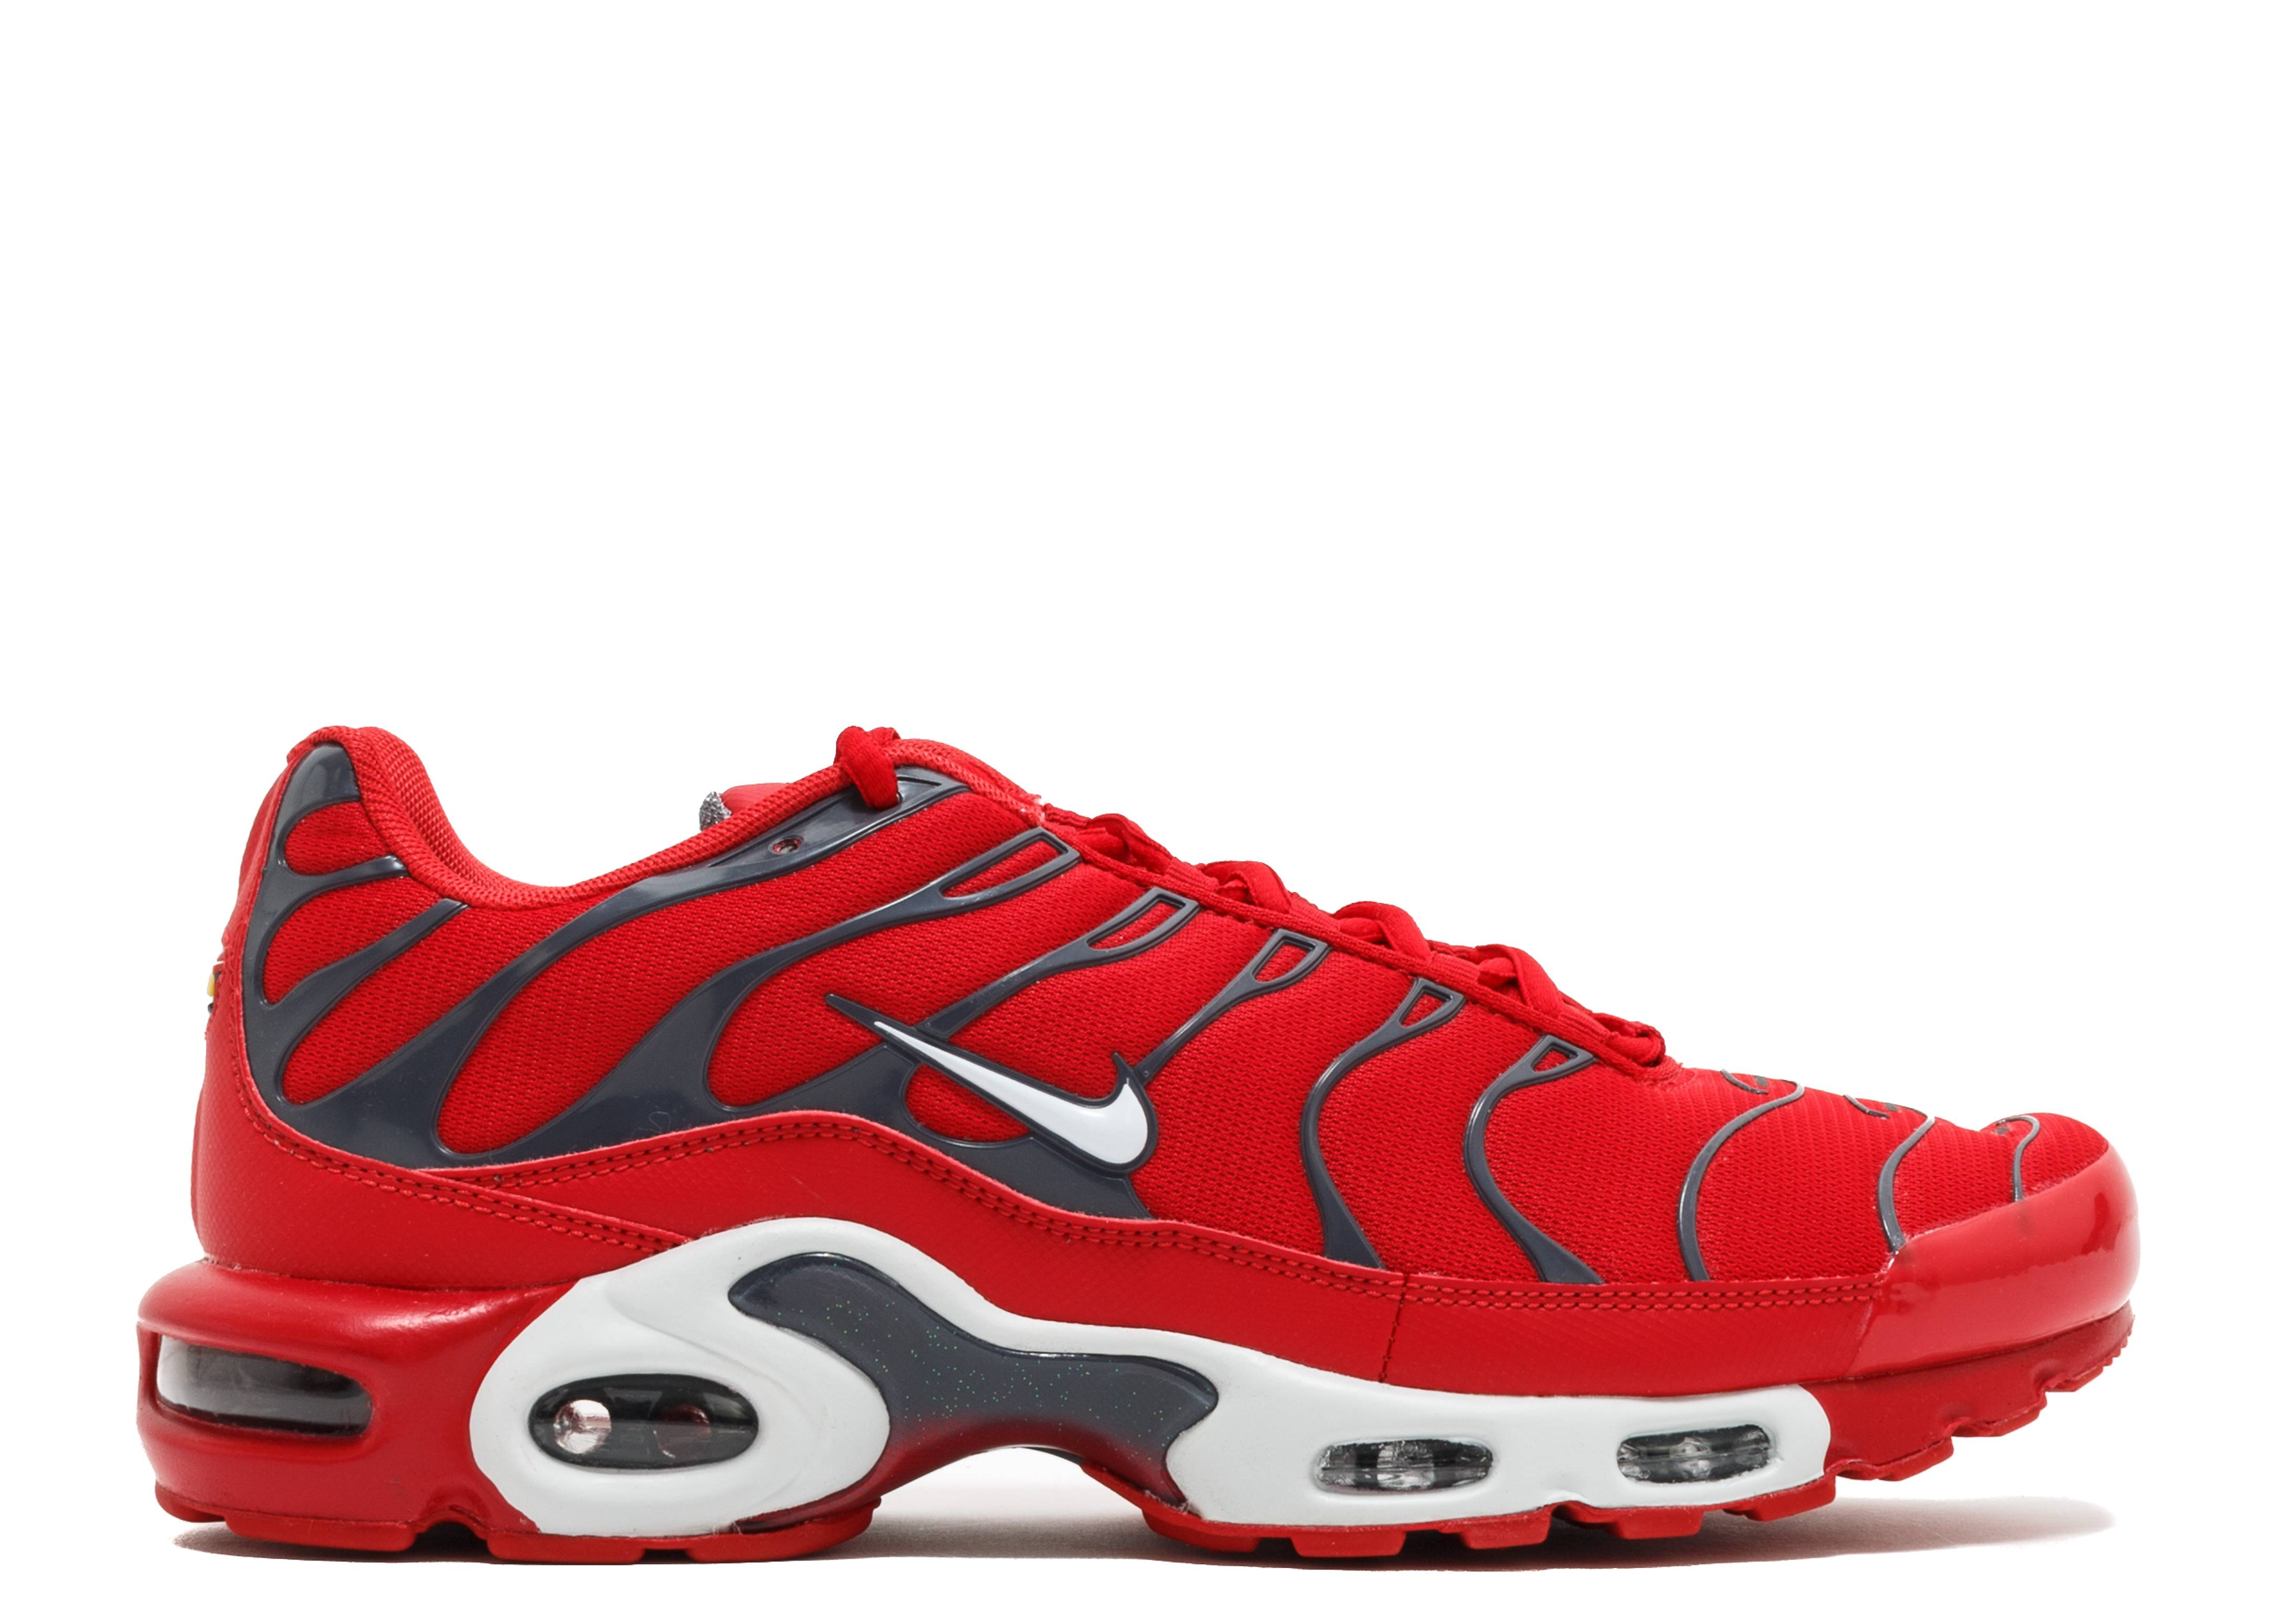 Air Max Plus Quot Red Pure Platinum Quot Nike 852630 600